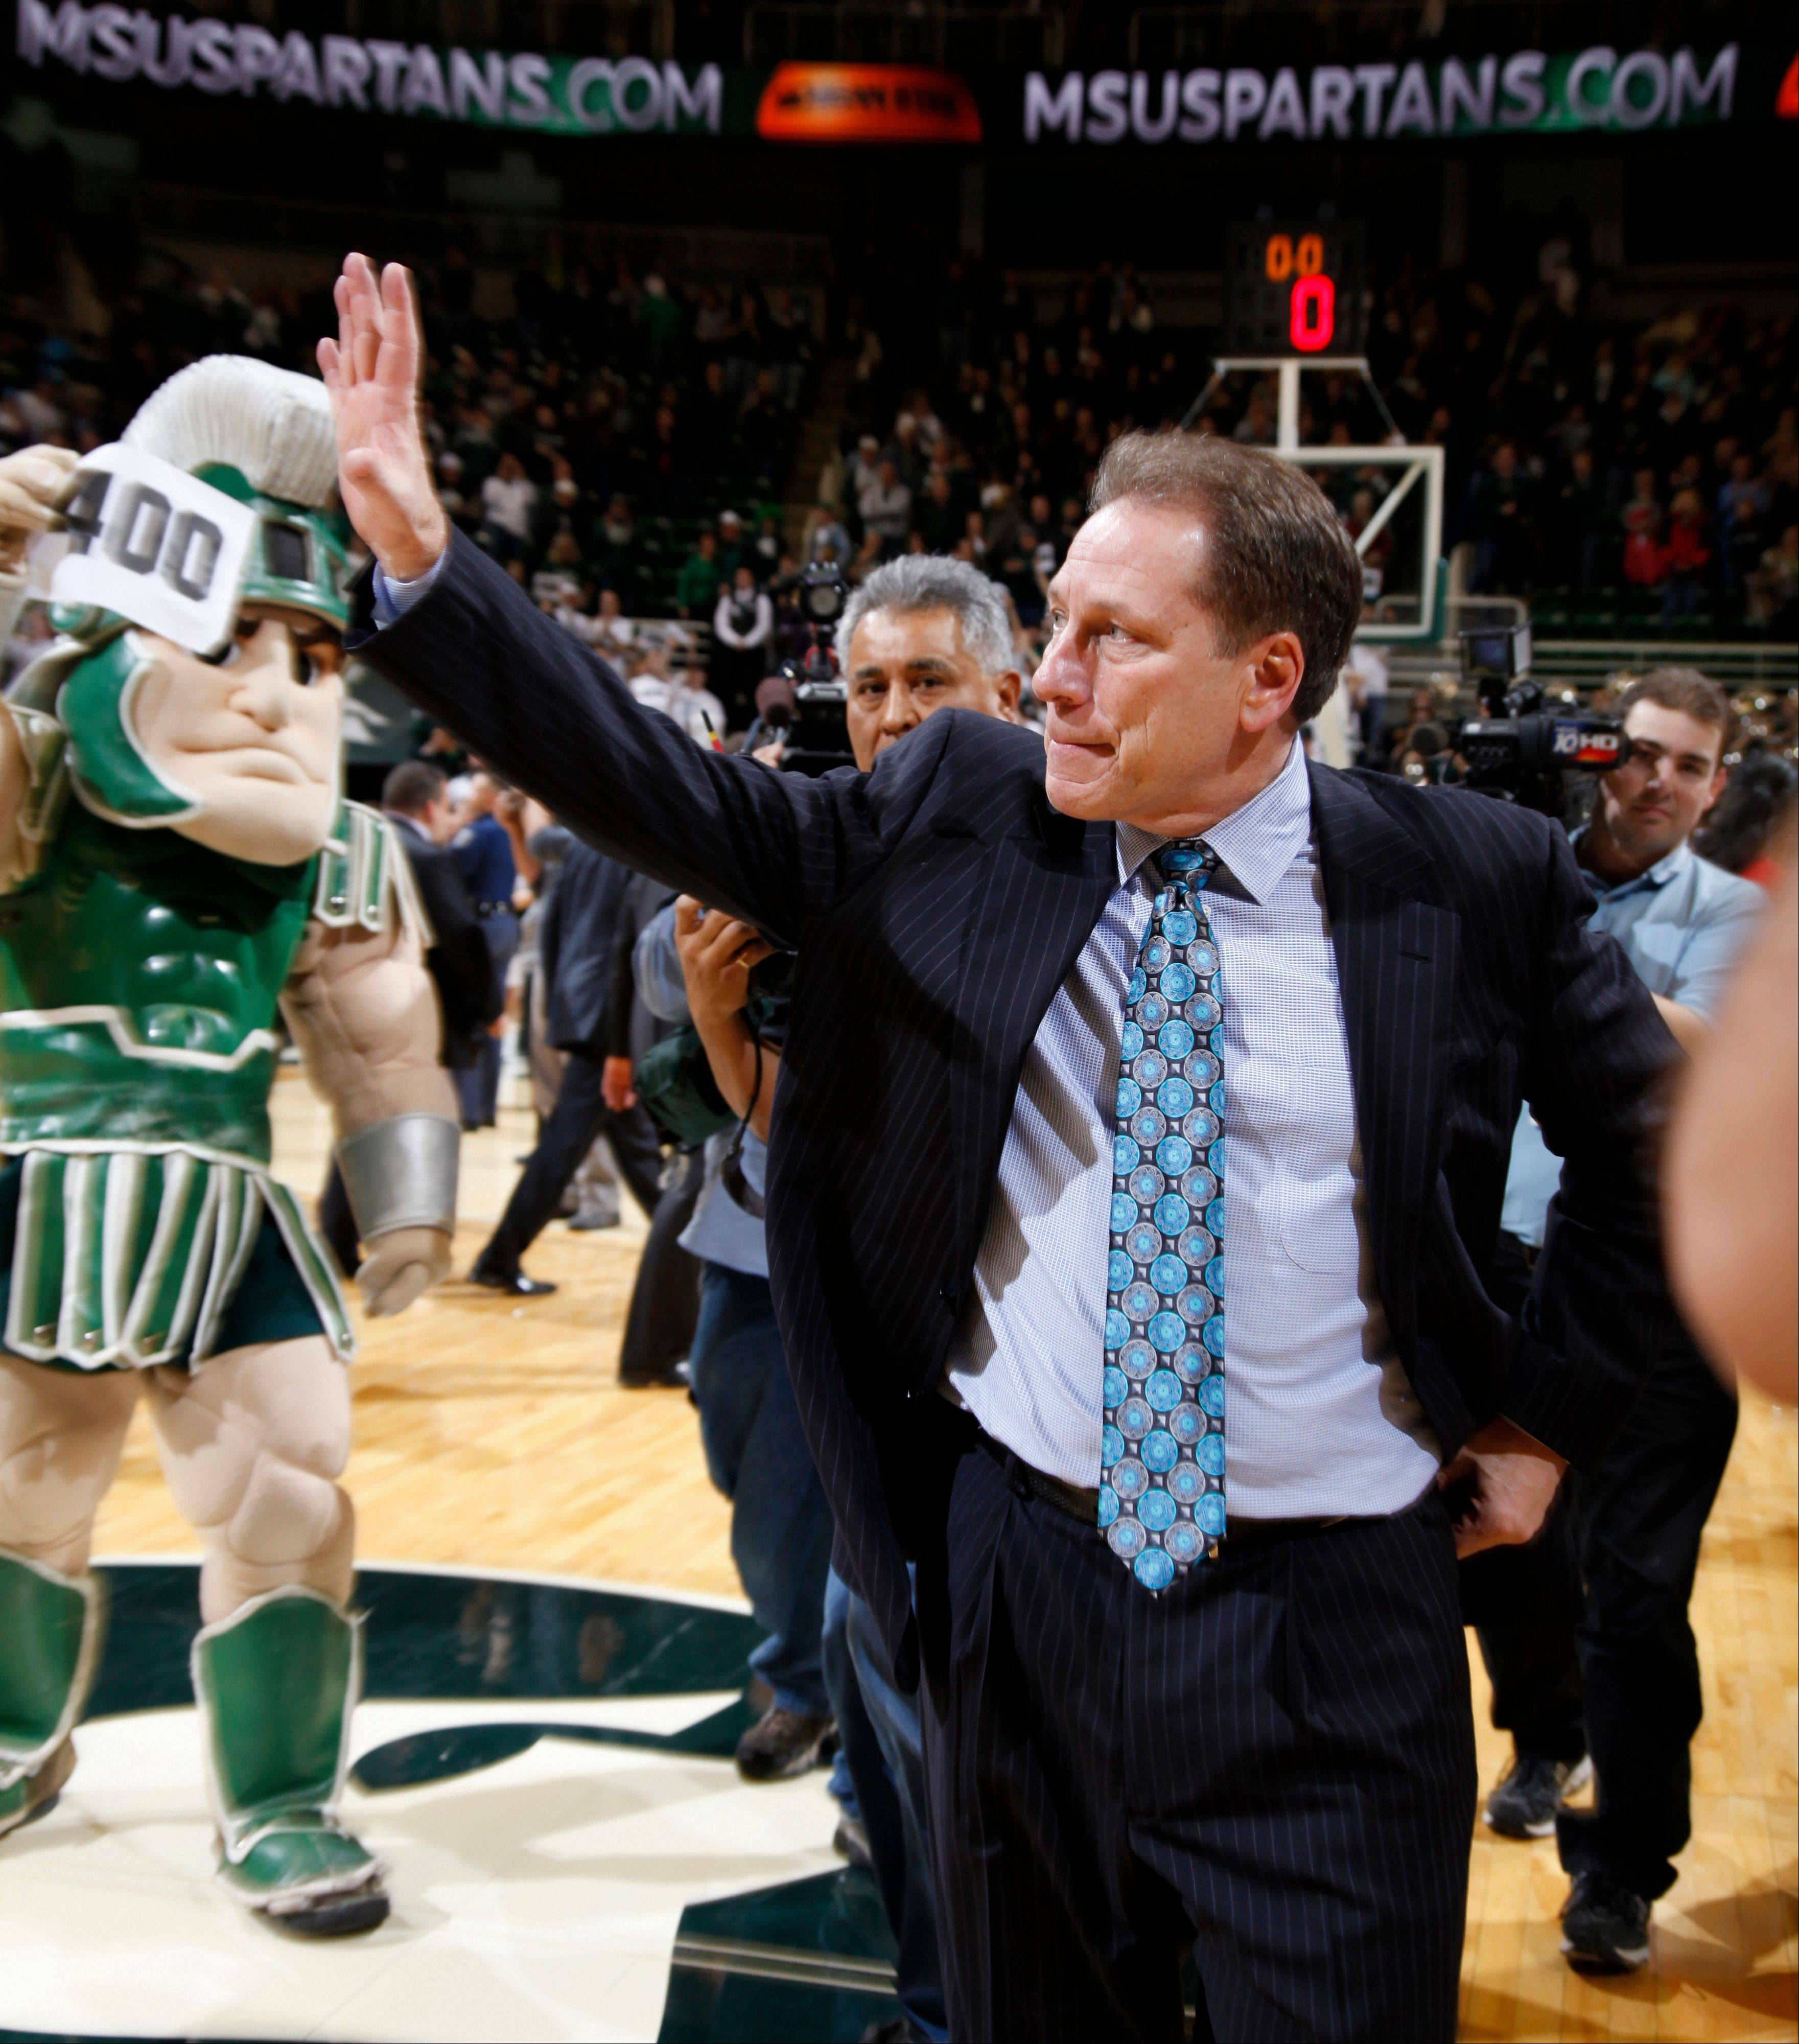 Michigan State coach Tom Izzo notched his 400th career win last season, as well as another Big Ten title and a conference tournament championship. The Spartans hope to build on that success this year.